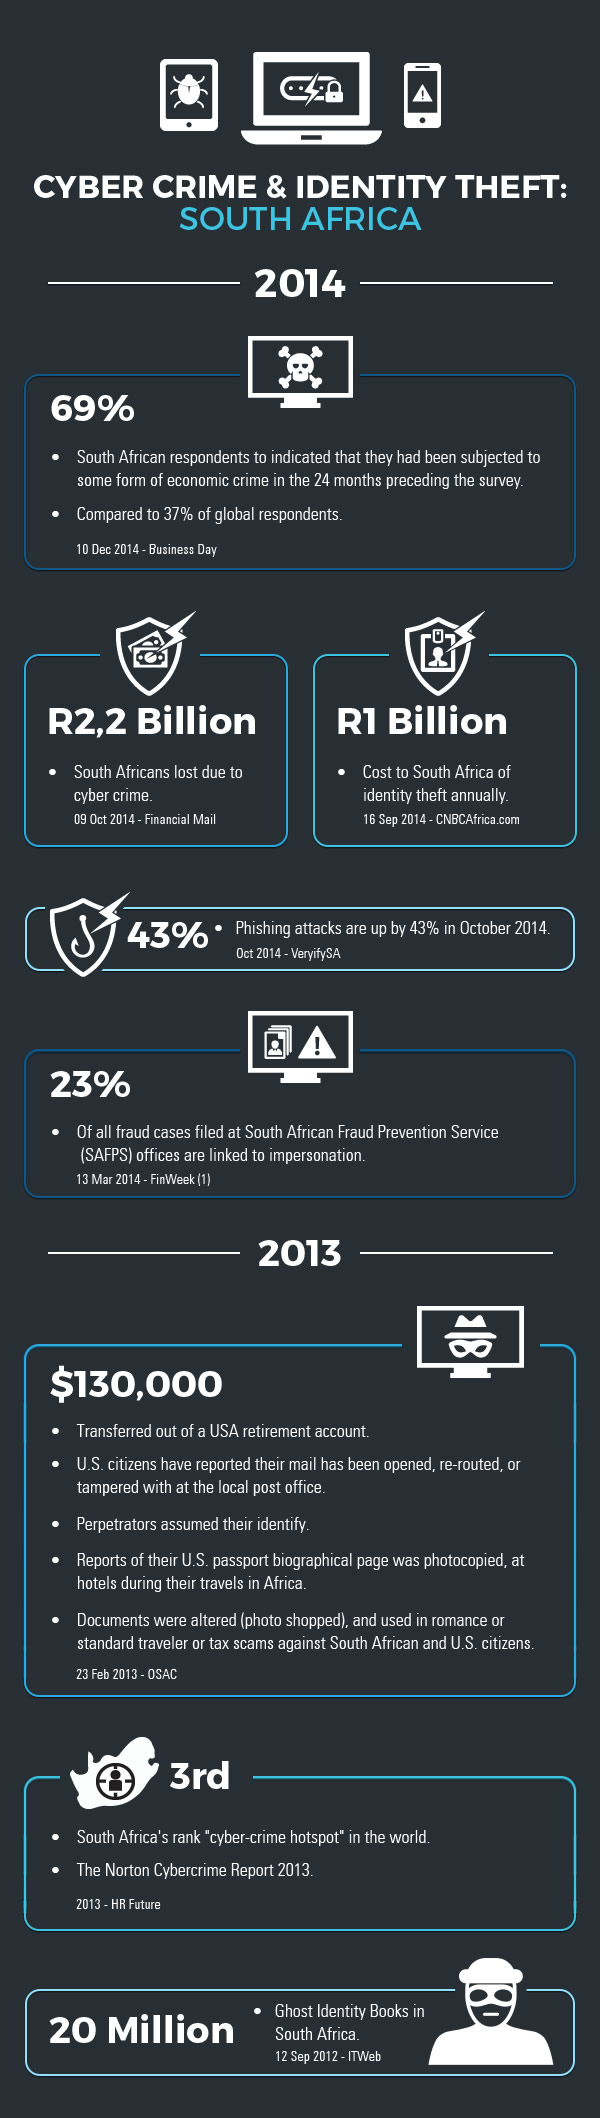 South African Statistics for Online Identity theft and fraud